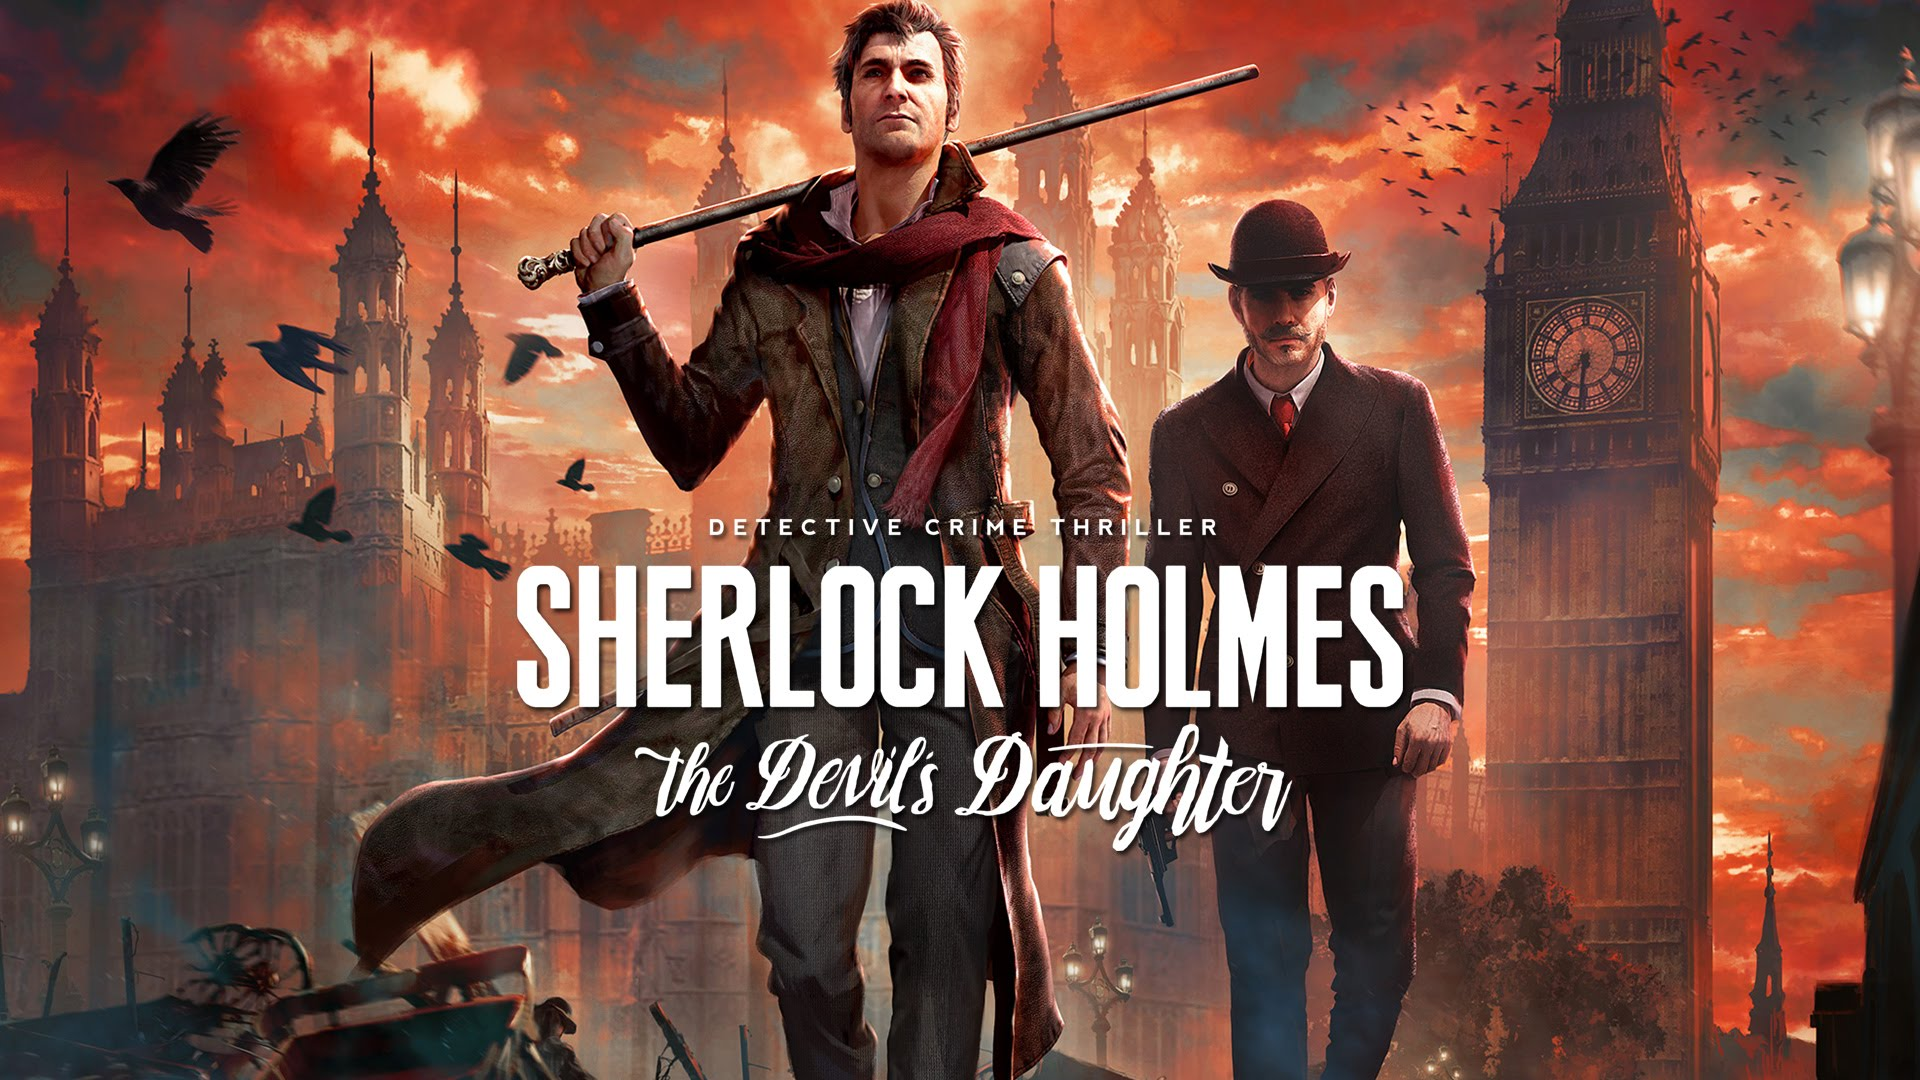 Sherlock Holmes CDKey The Devils Daughter beste Preise checken